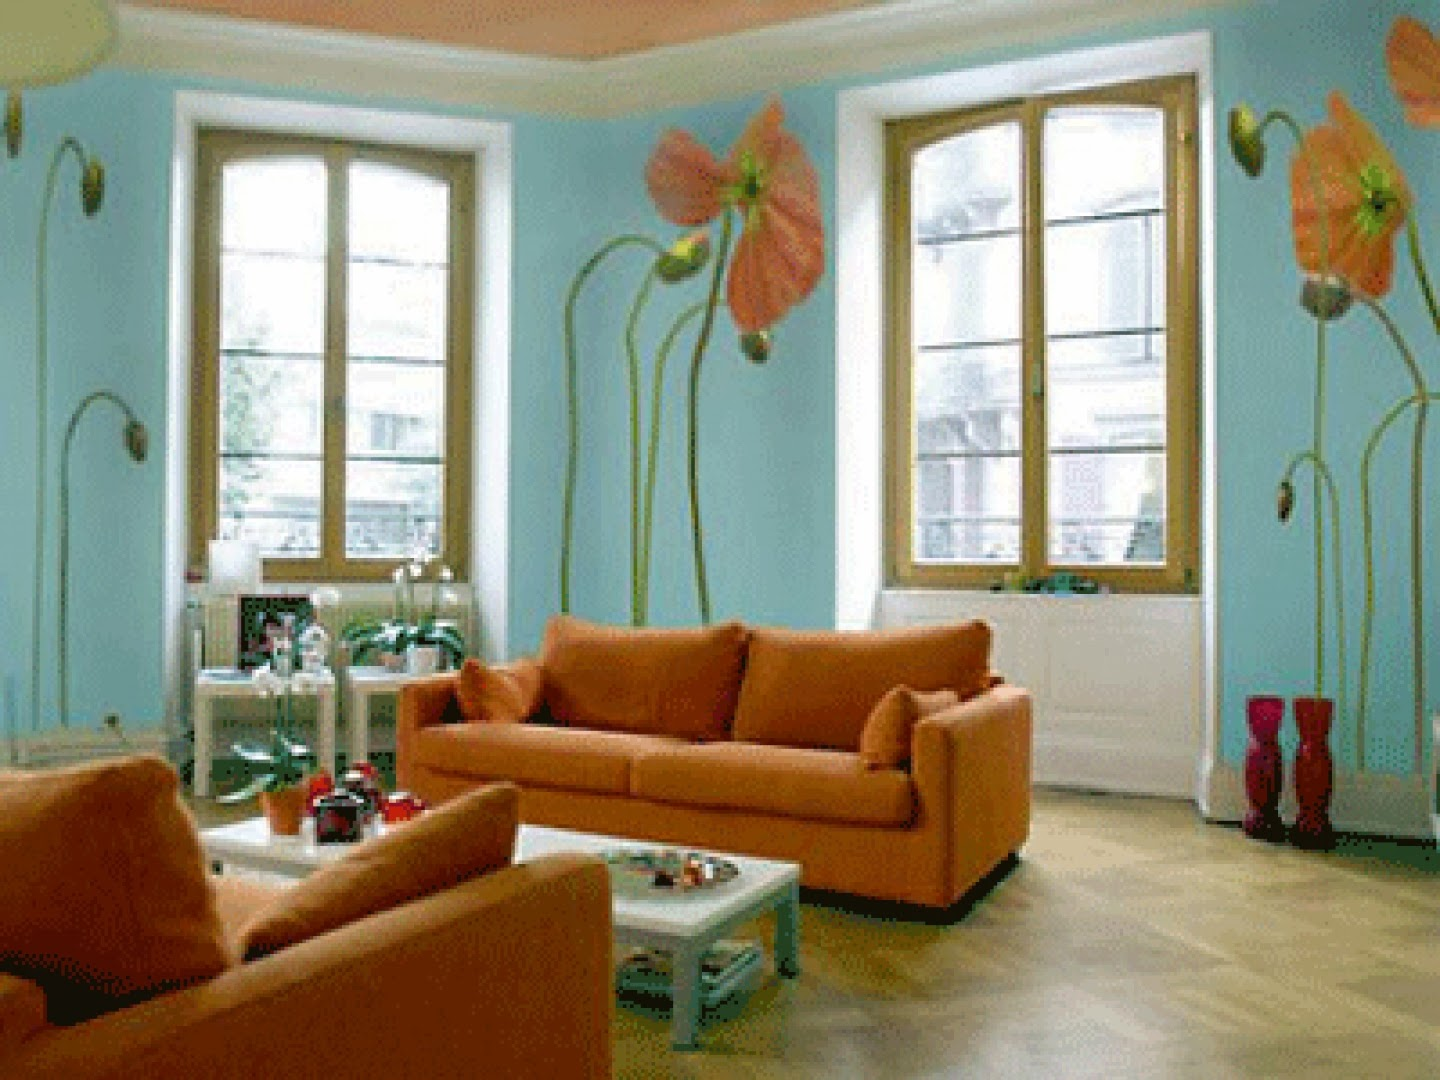 Modern Furniture: 2014 Interior Paint Color Trends